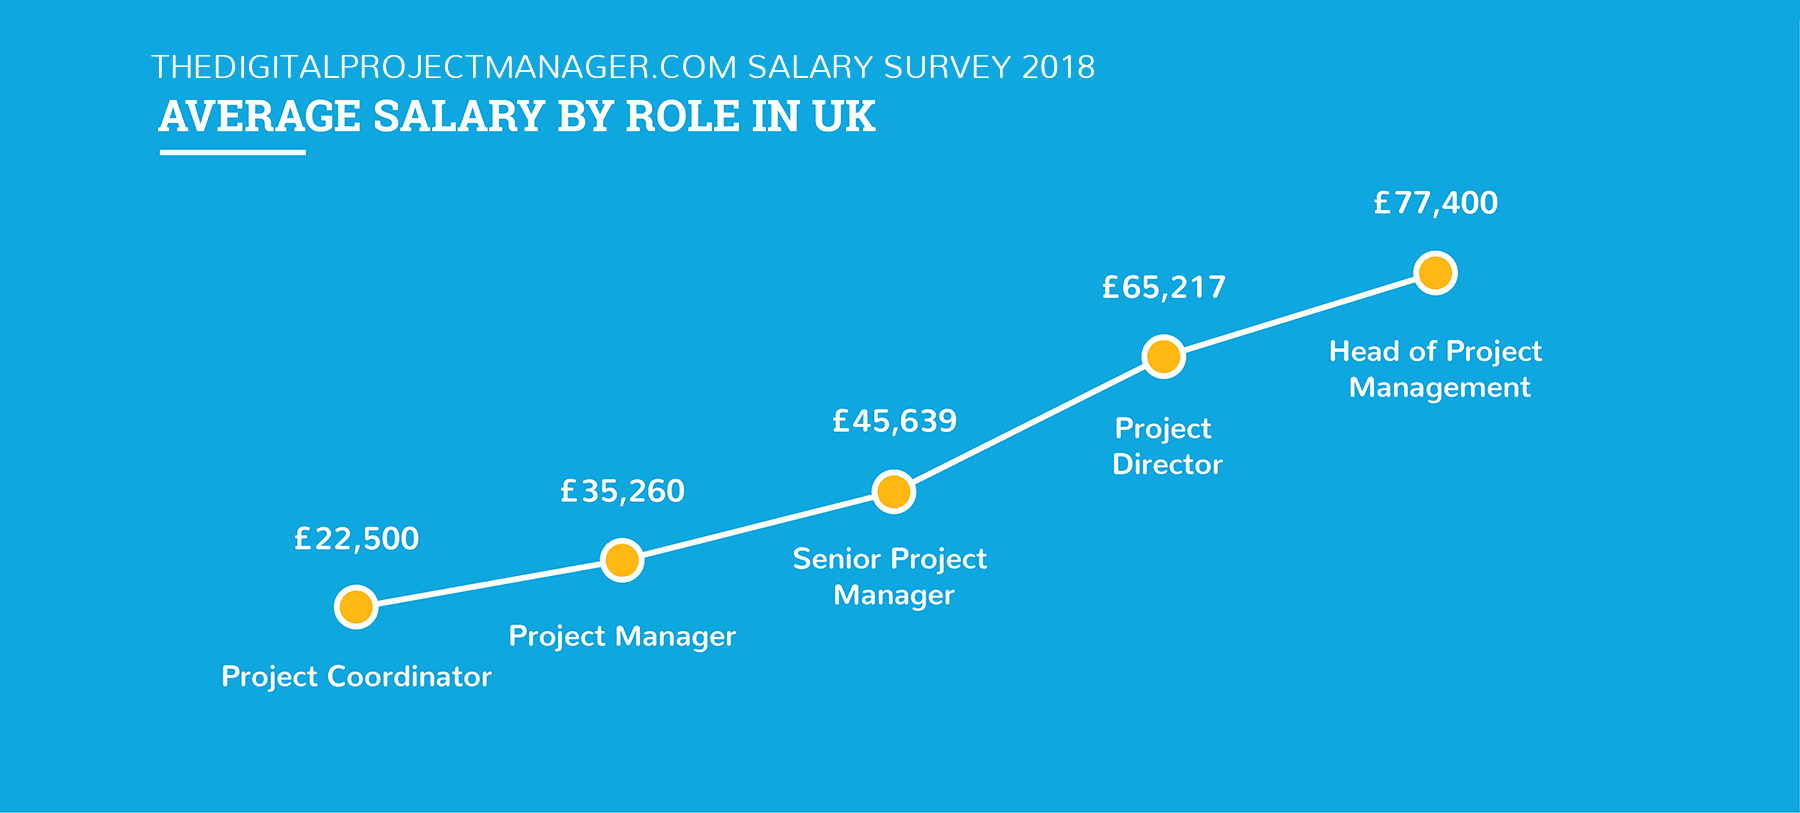 Digital project manager salary 2018 - united kingdom